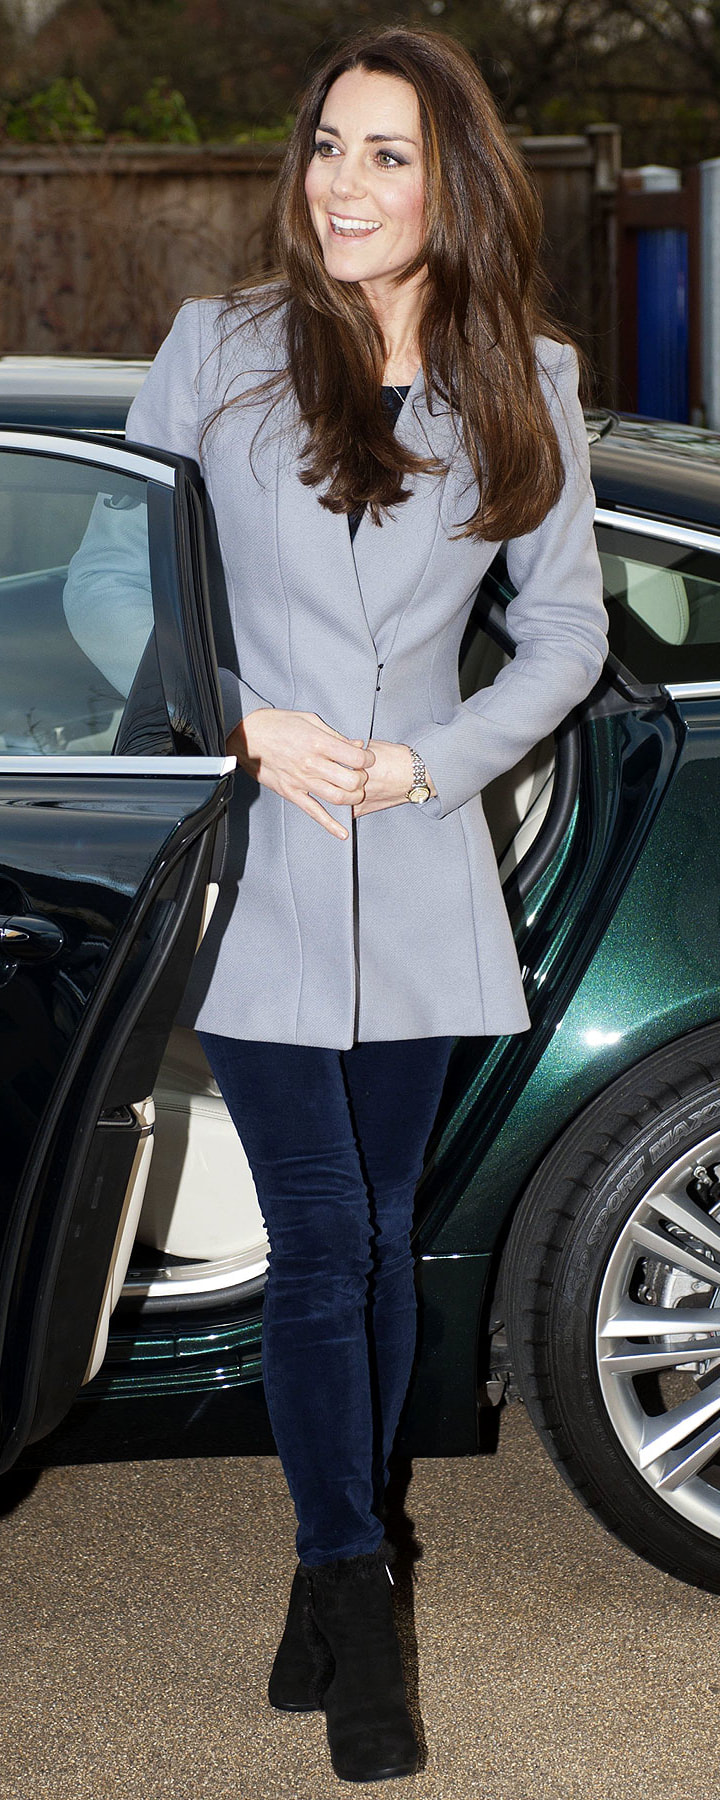 Reiss Delany Grey Coat as seen on Kate Middleton, The Duchess of Cambridge